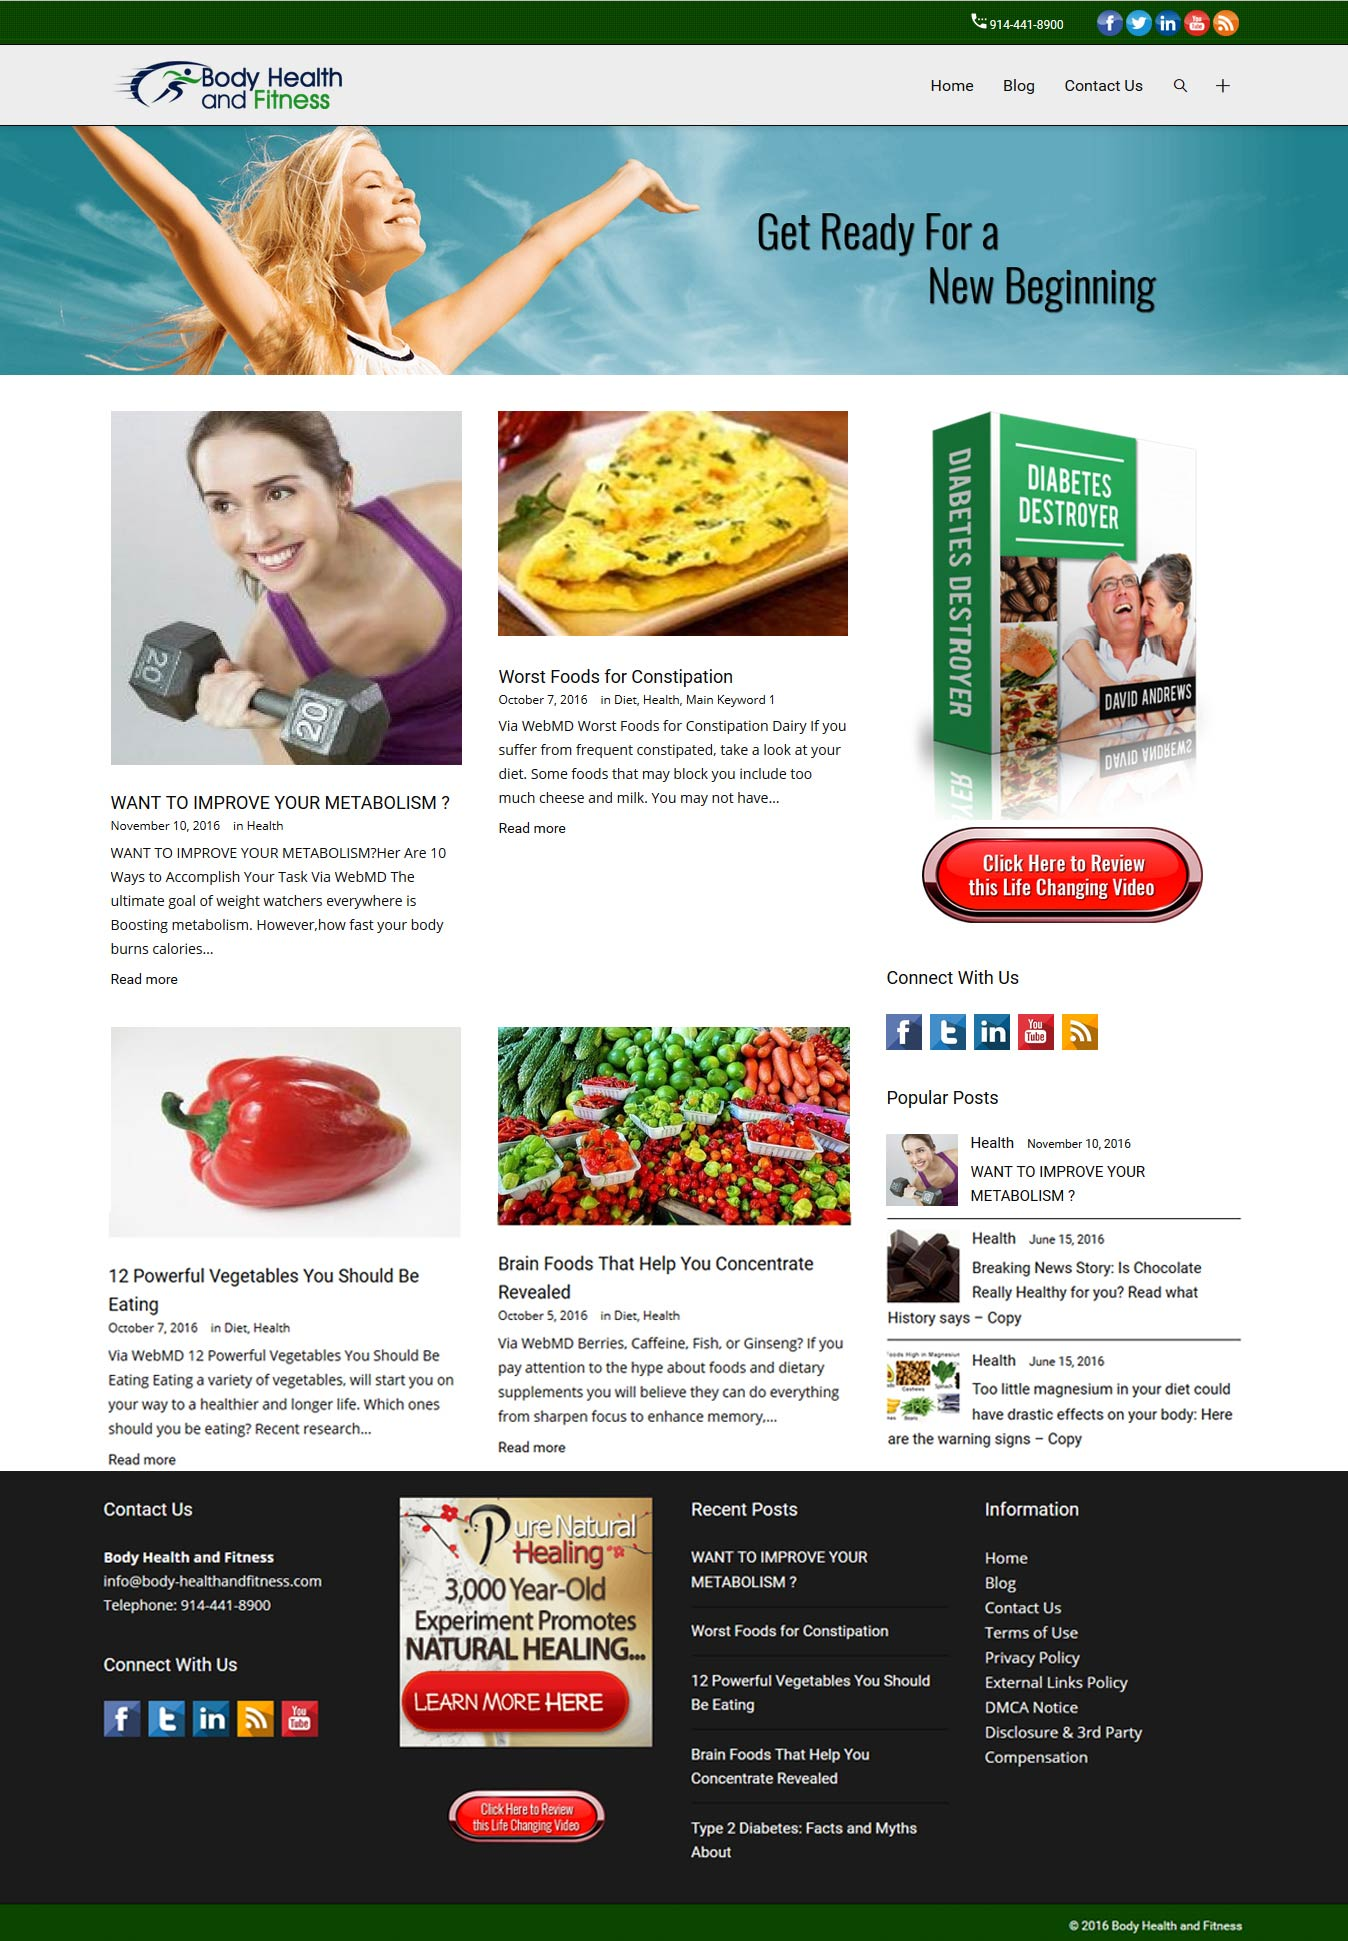 Body-Health-And-Fitness-clickbank